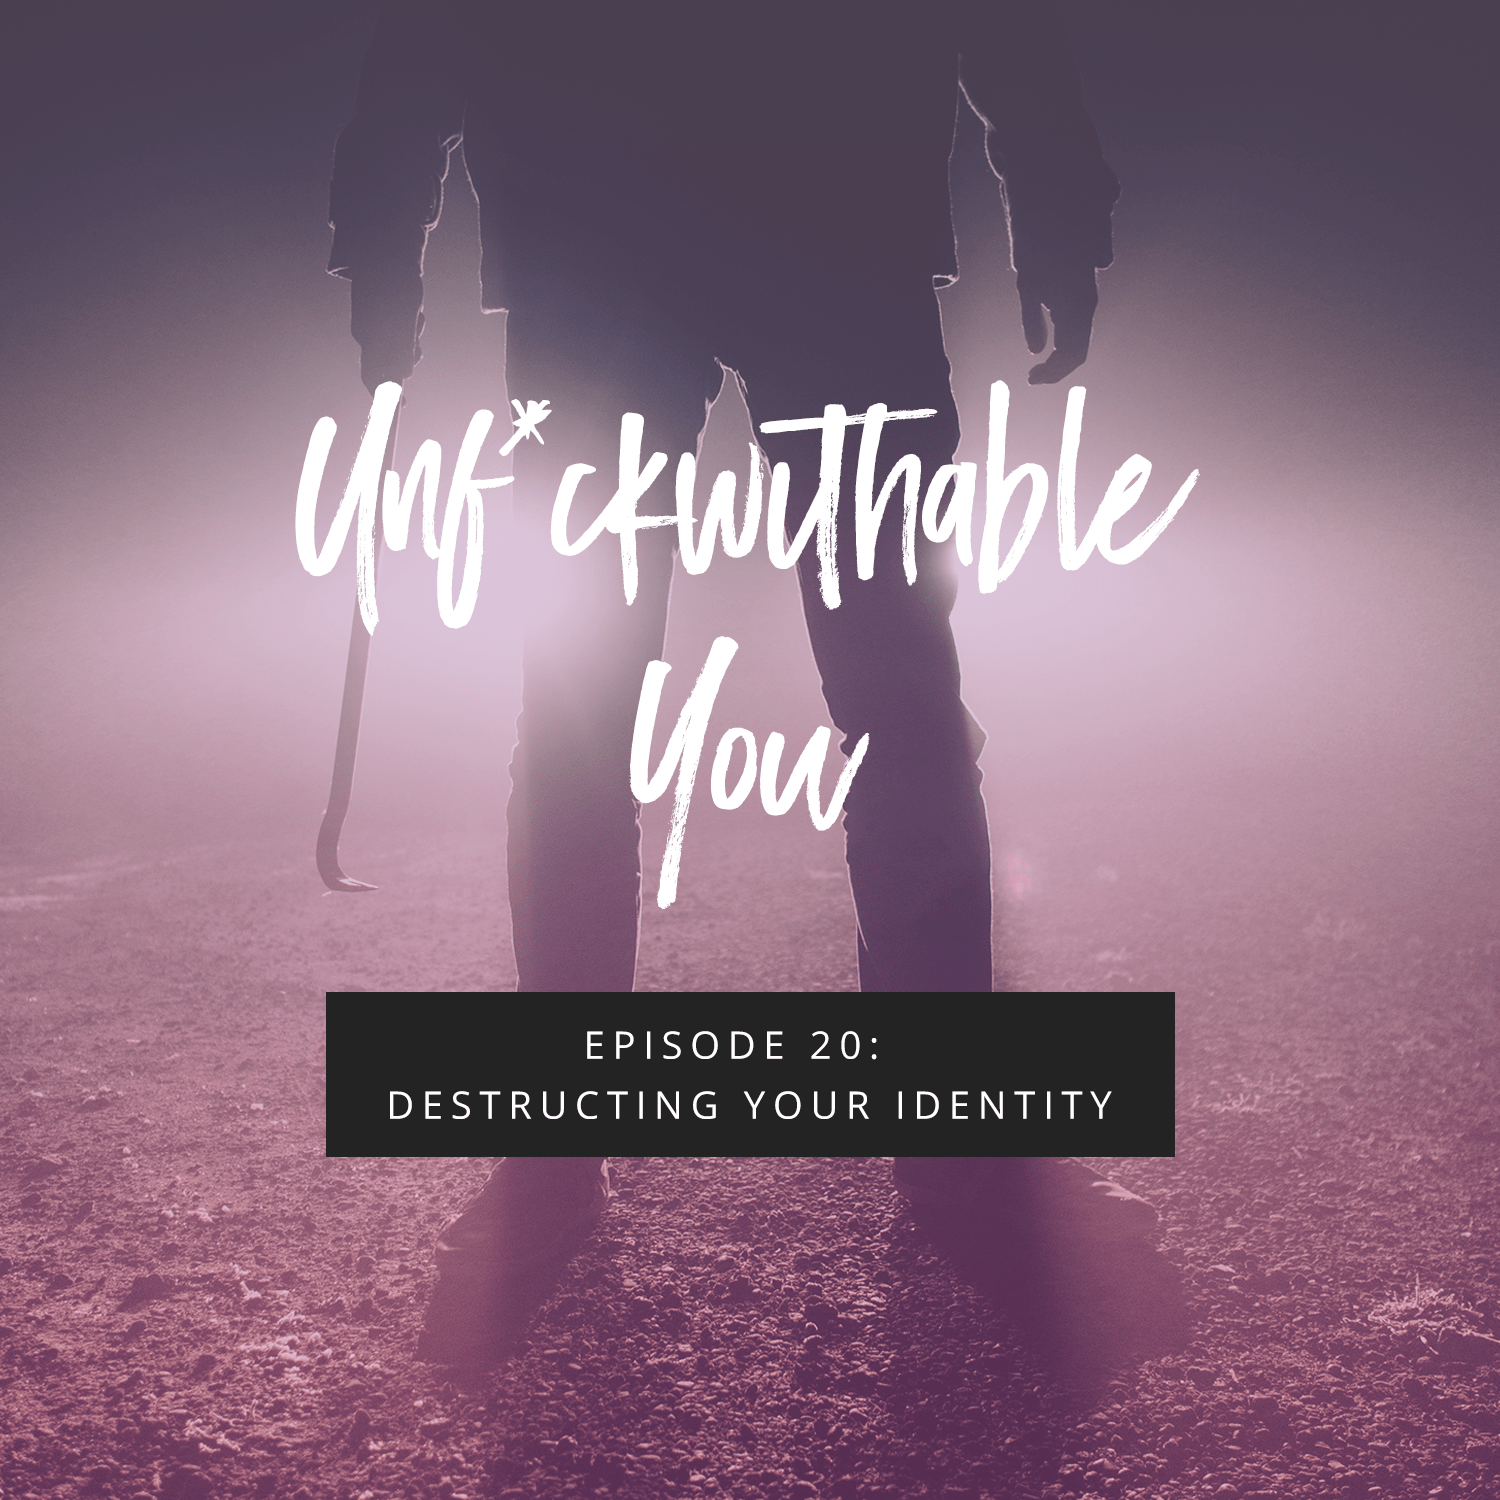 Unf*ckwithable You Episode 20: Destructing Your Identity